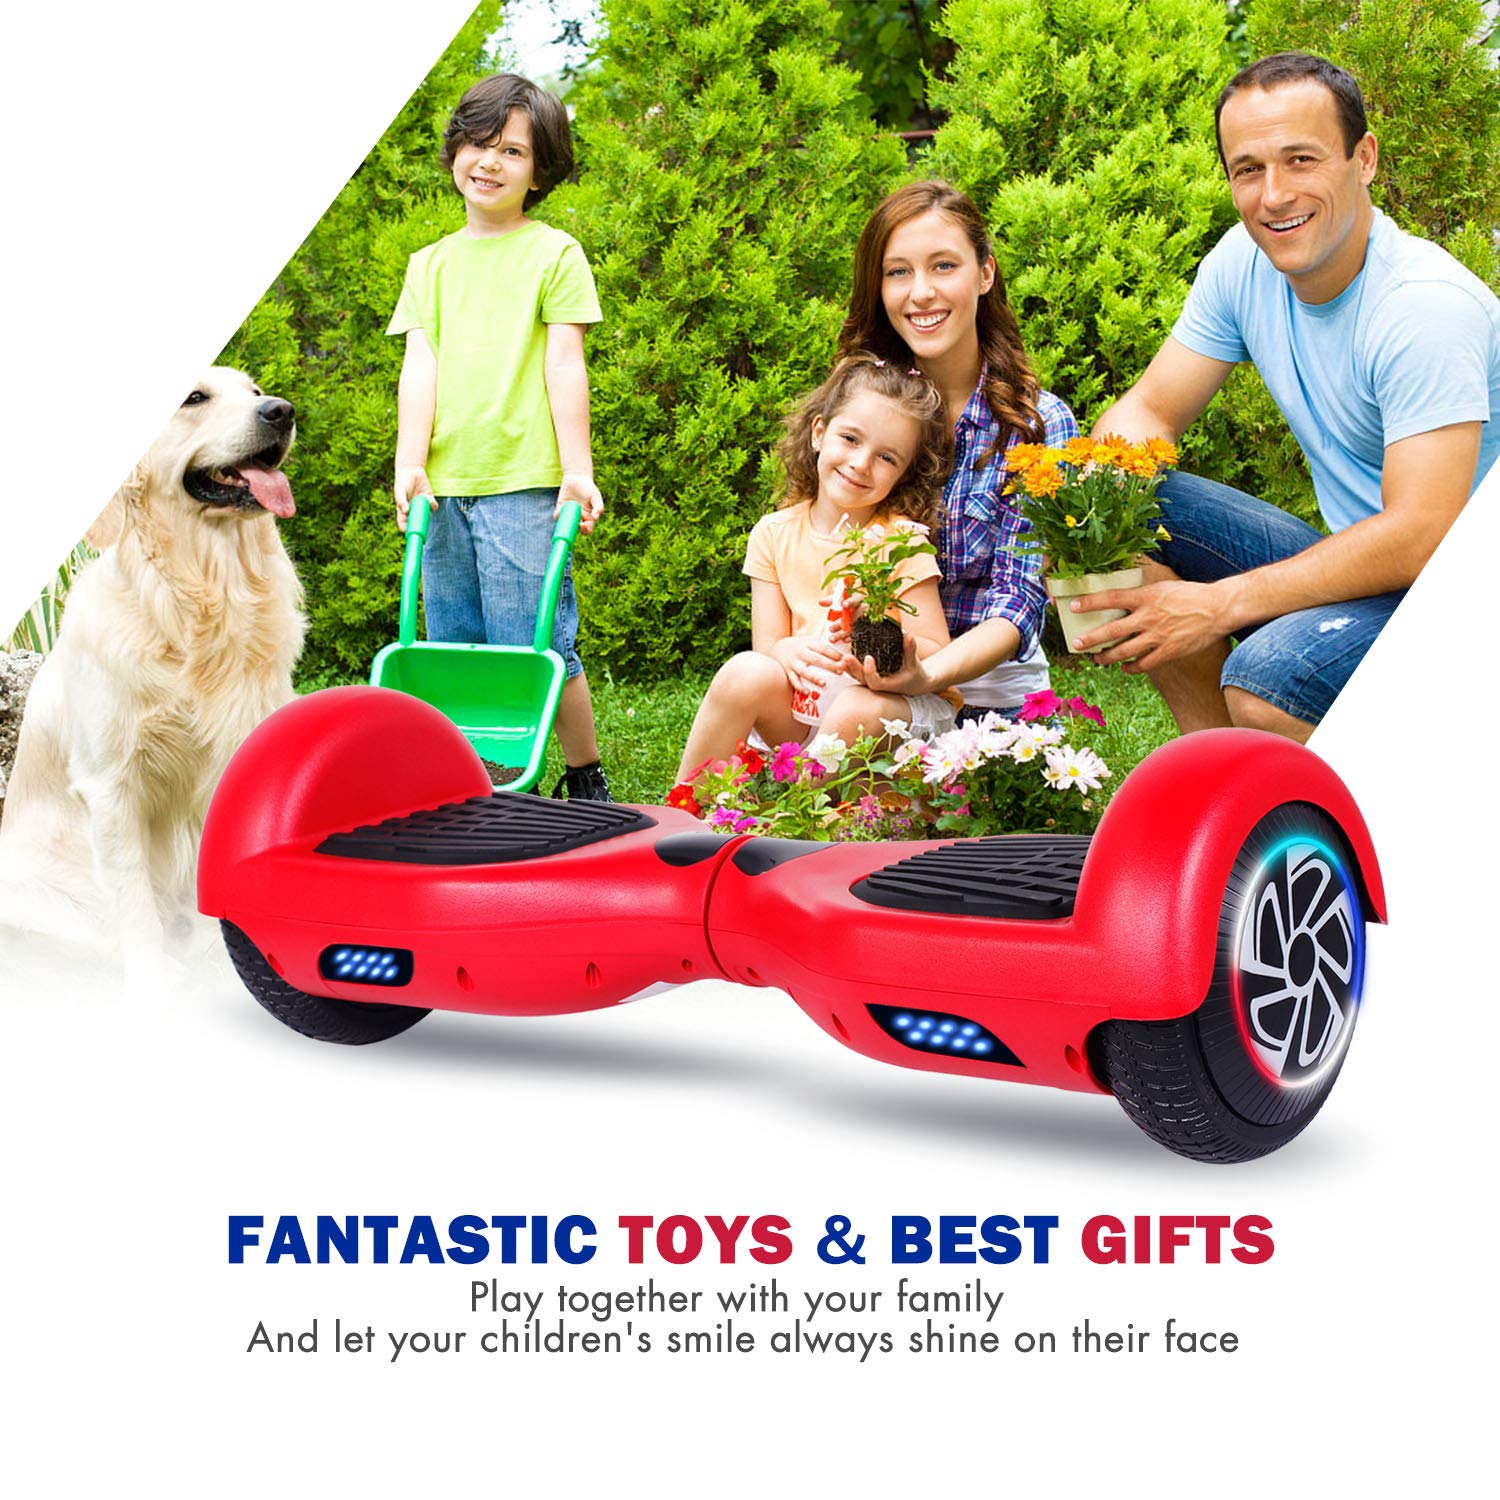 SISIGAD Hoverboard Self Balancing Scooter 6.5'' Two-Wheel Self Balancing Hoverboard with LED Lights Electric Scooter for Adult Kids Gift UL 2272 Certified - Red by SISIGAD (Image #6)